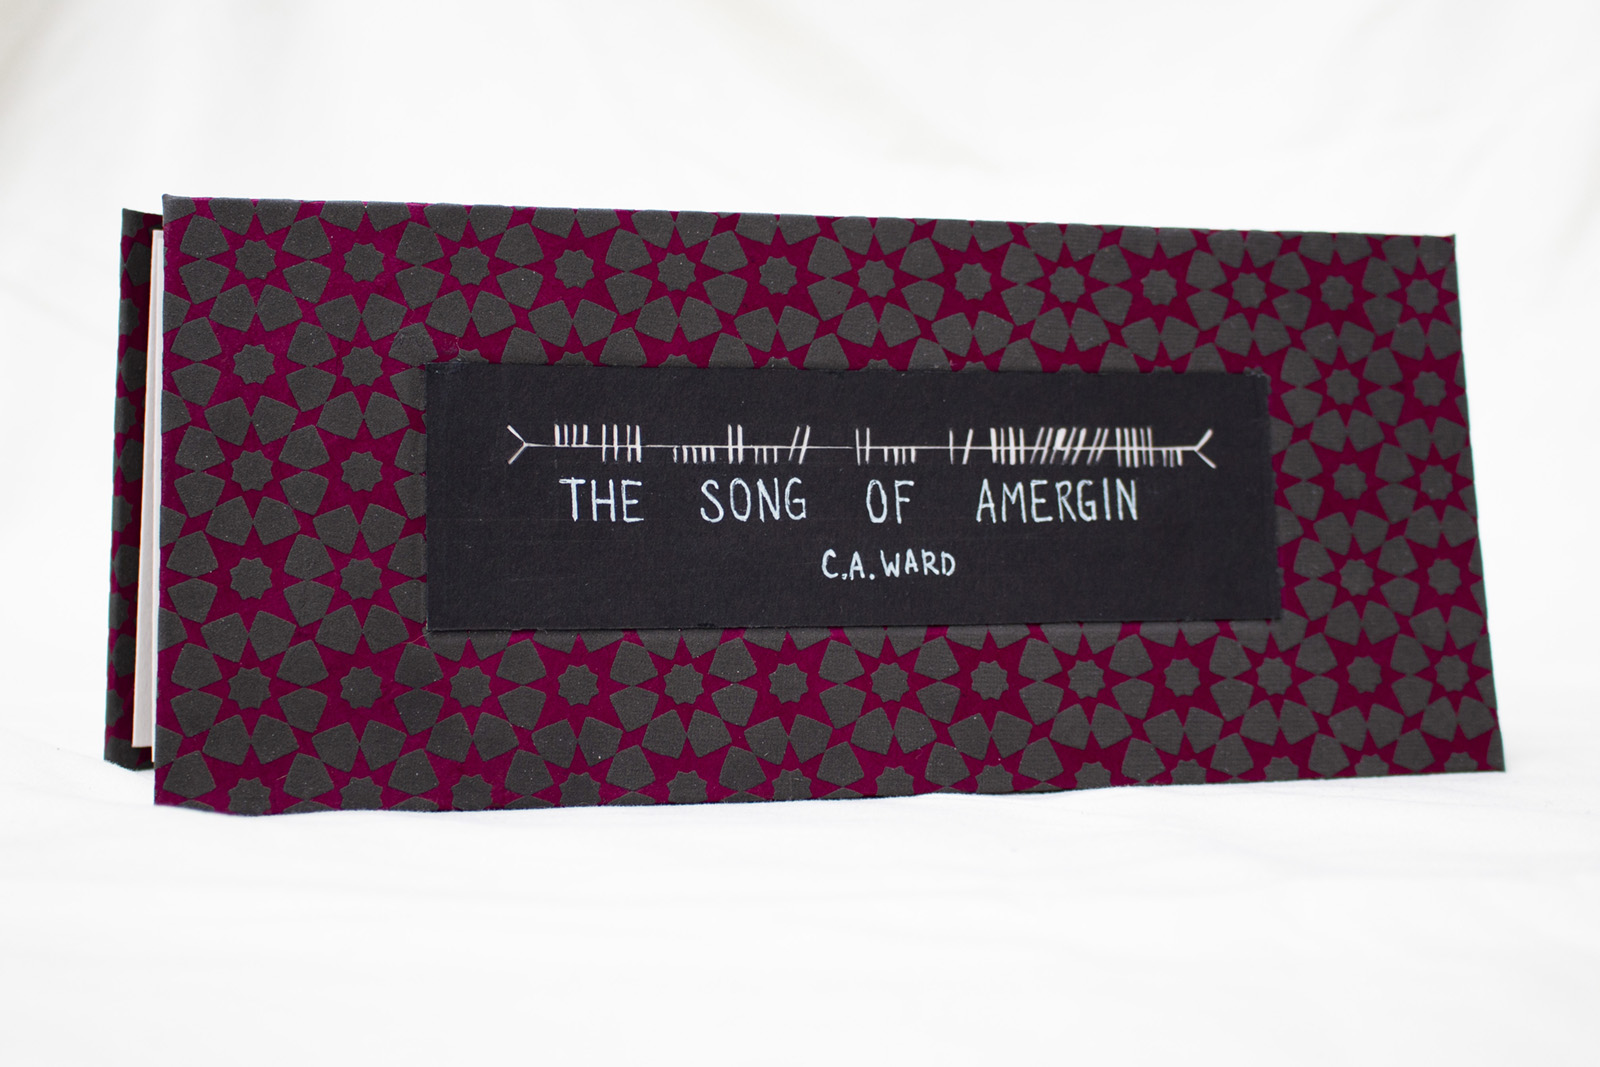 The front cover of a handmade carousel book. It's titled The Song of Amergin by C. A. Ward.